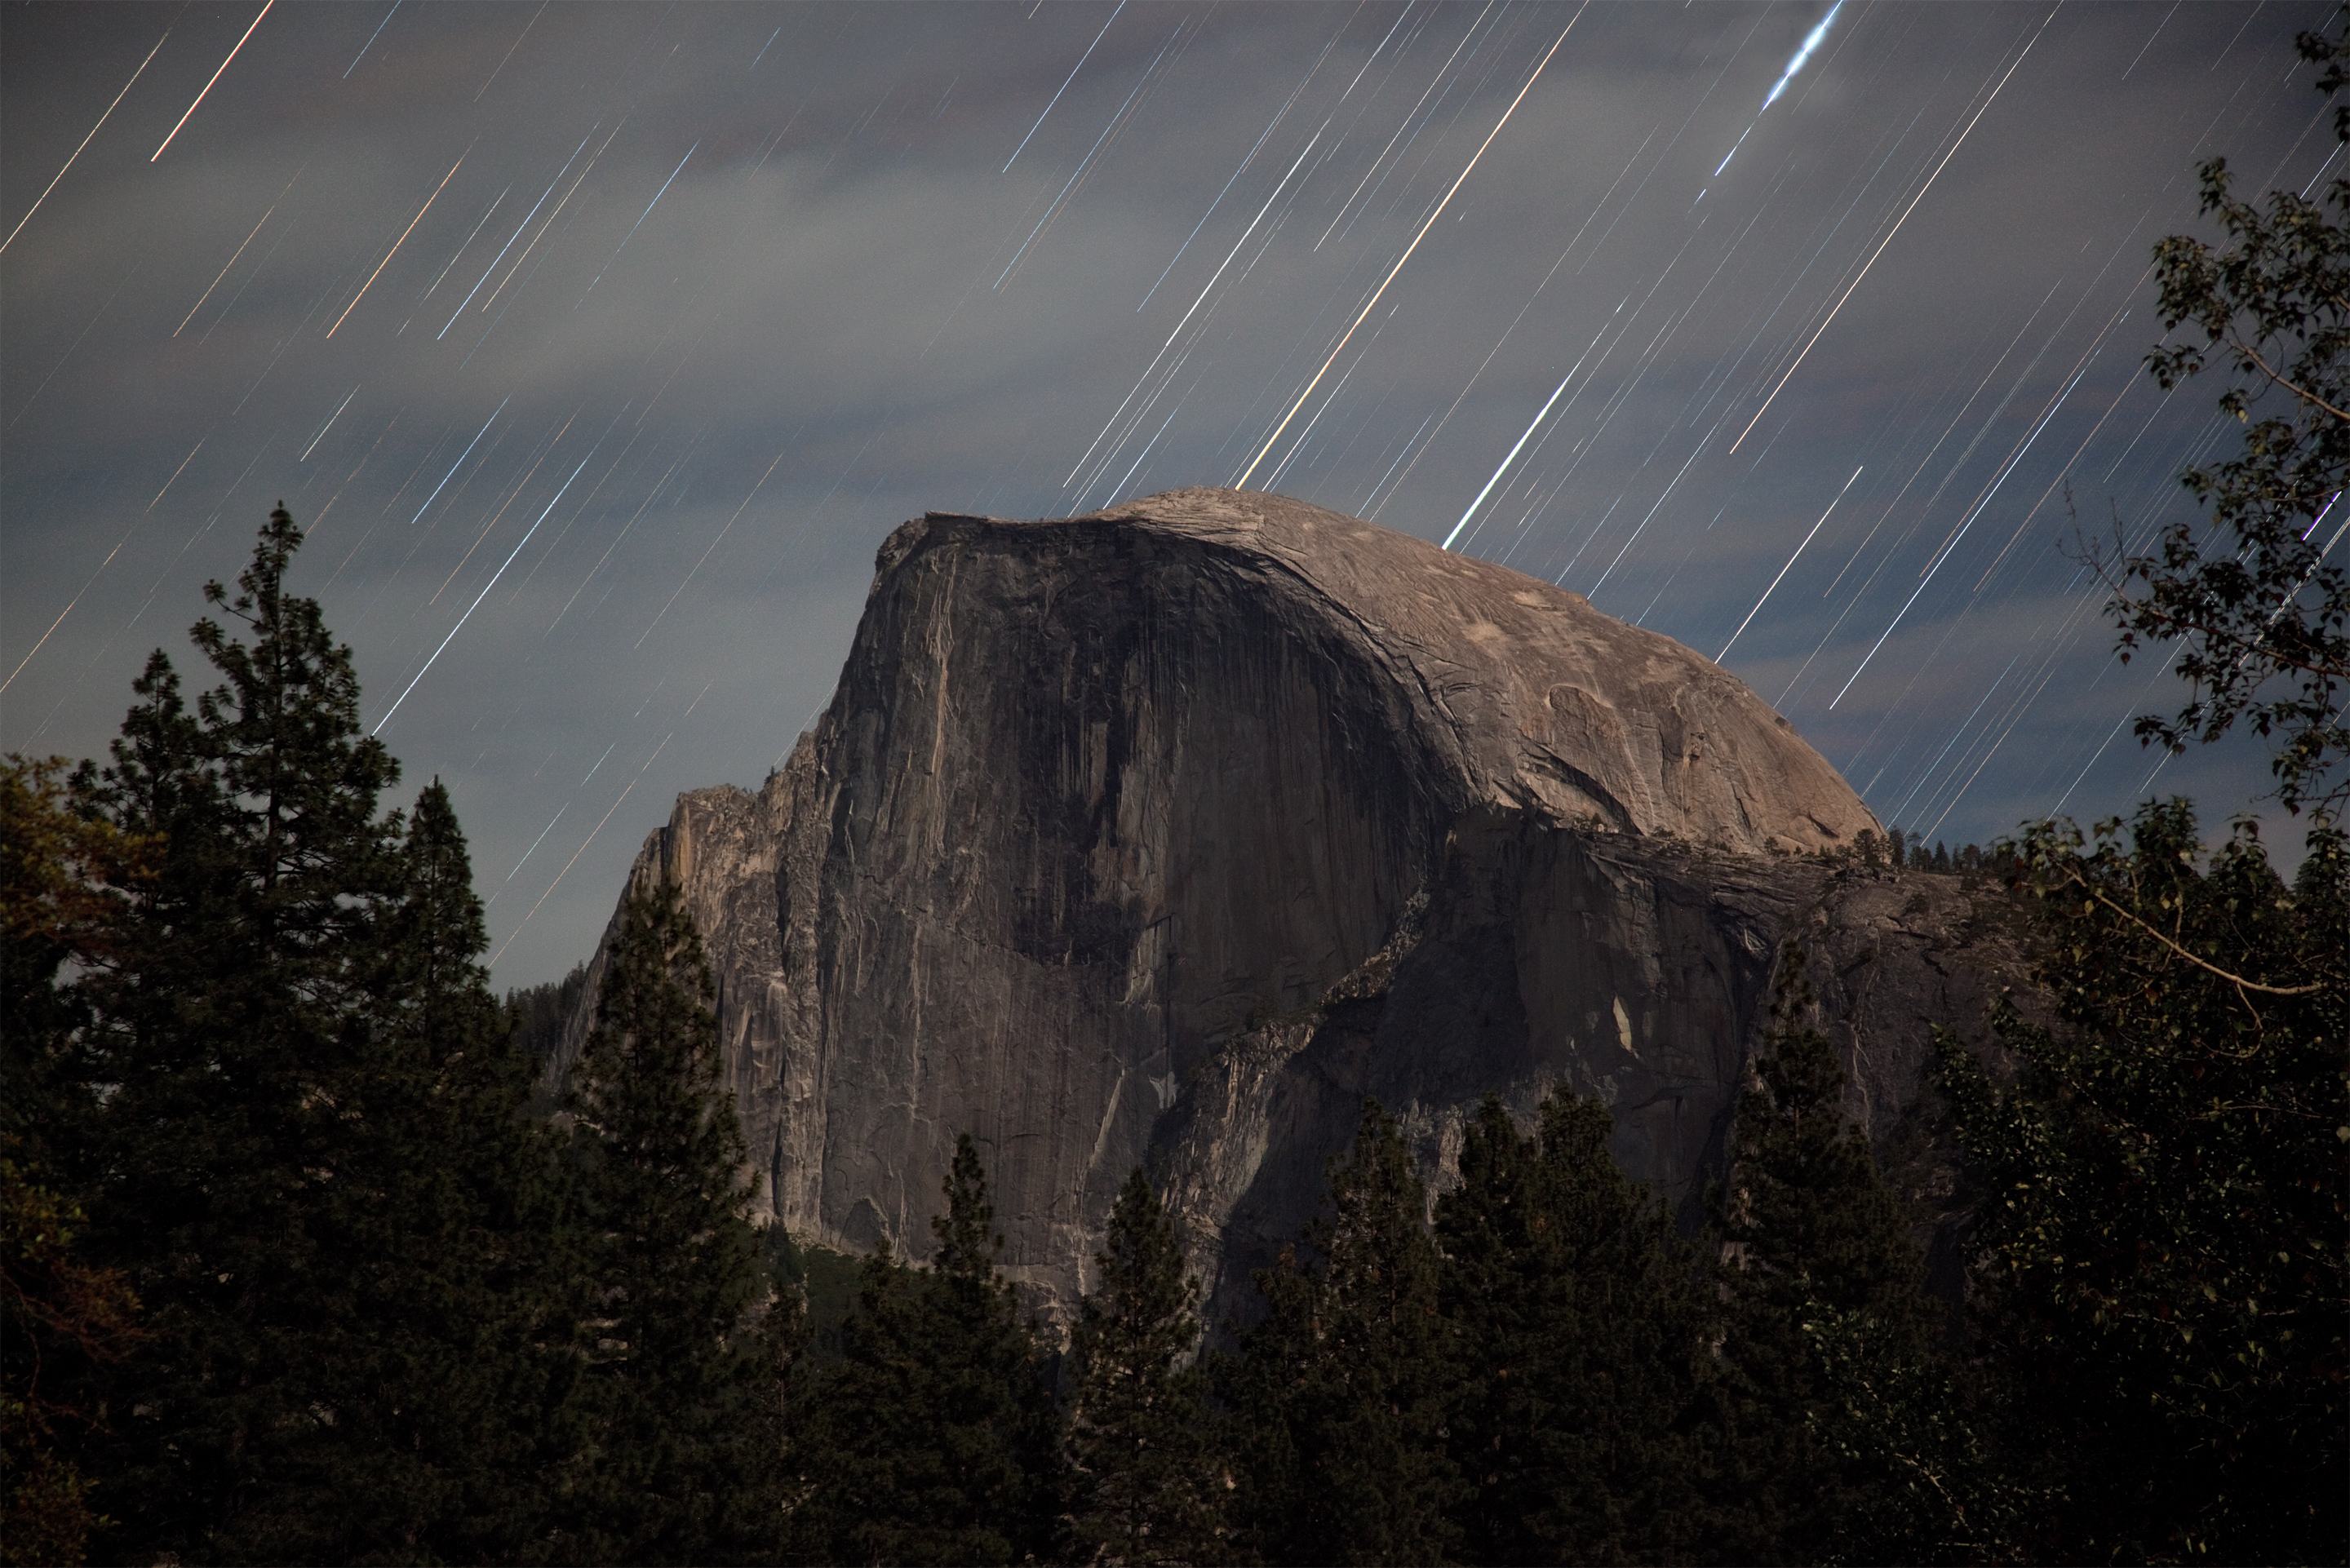 yosemite star trail backgrounds for your iphone, ipad or mac